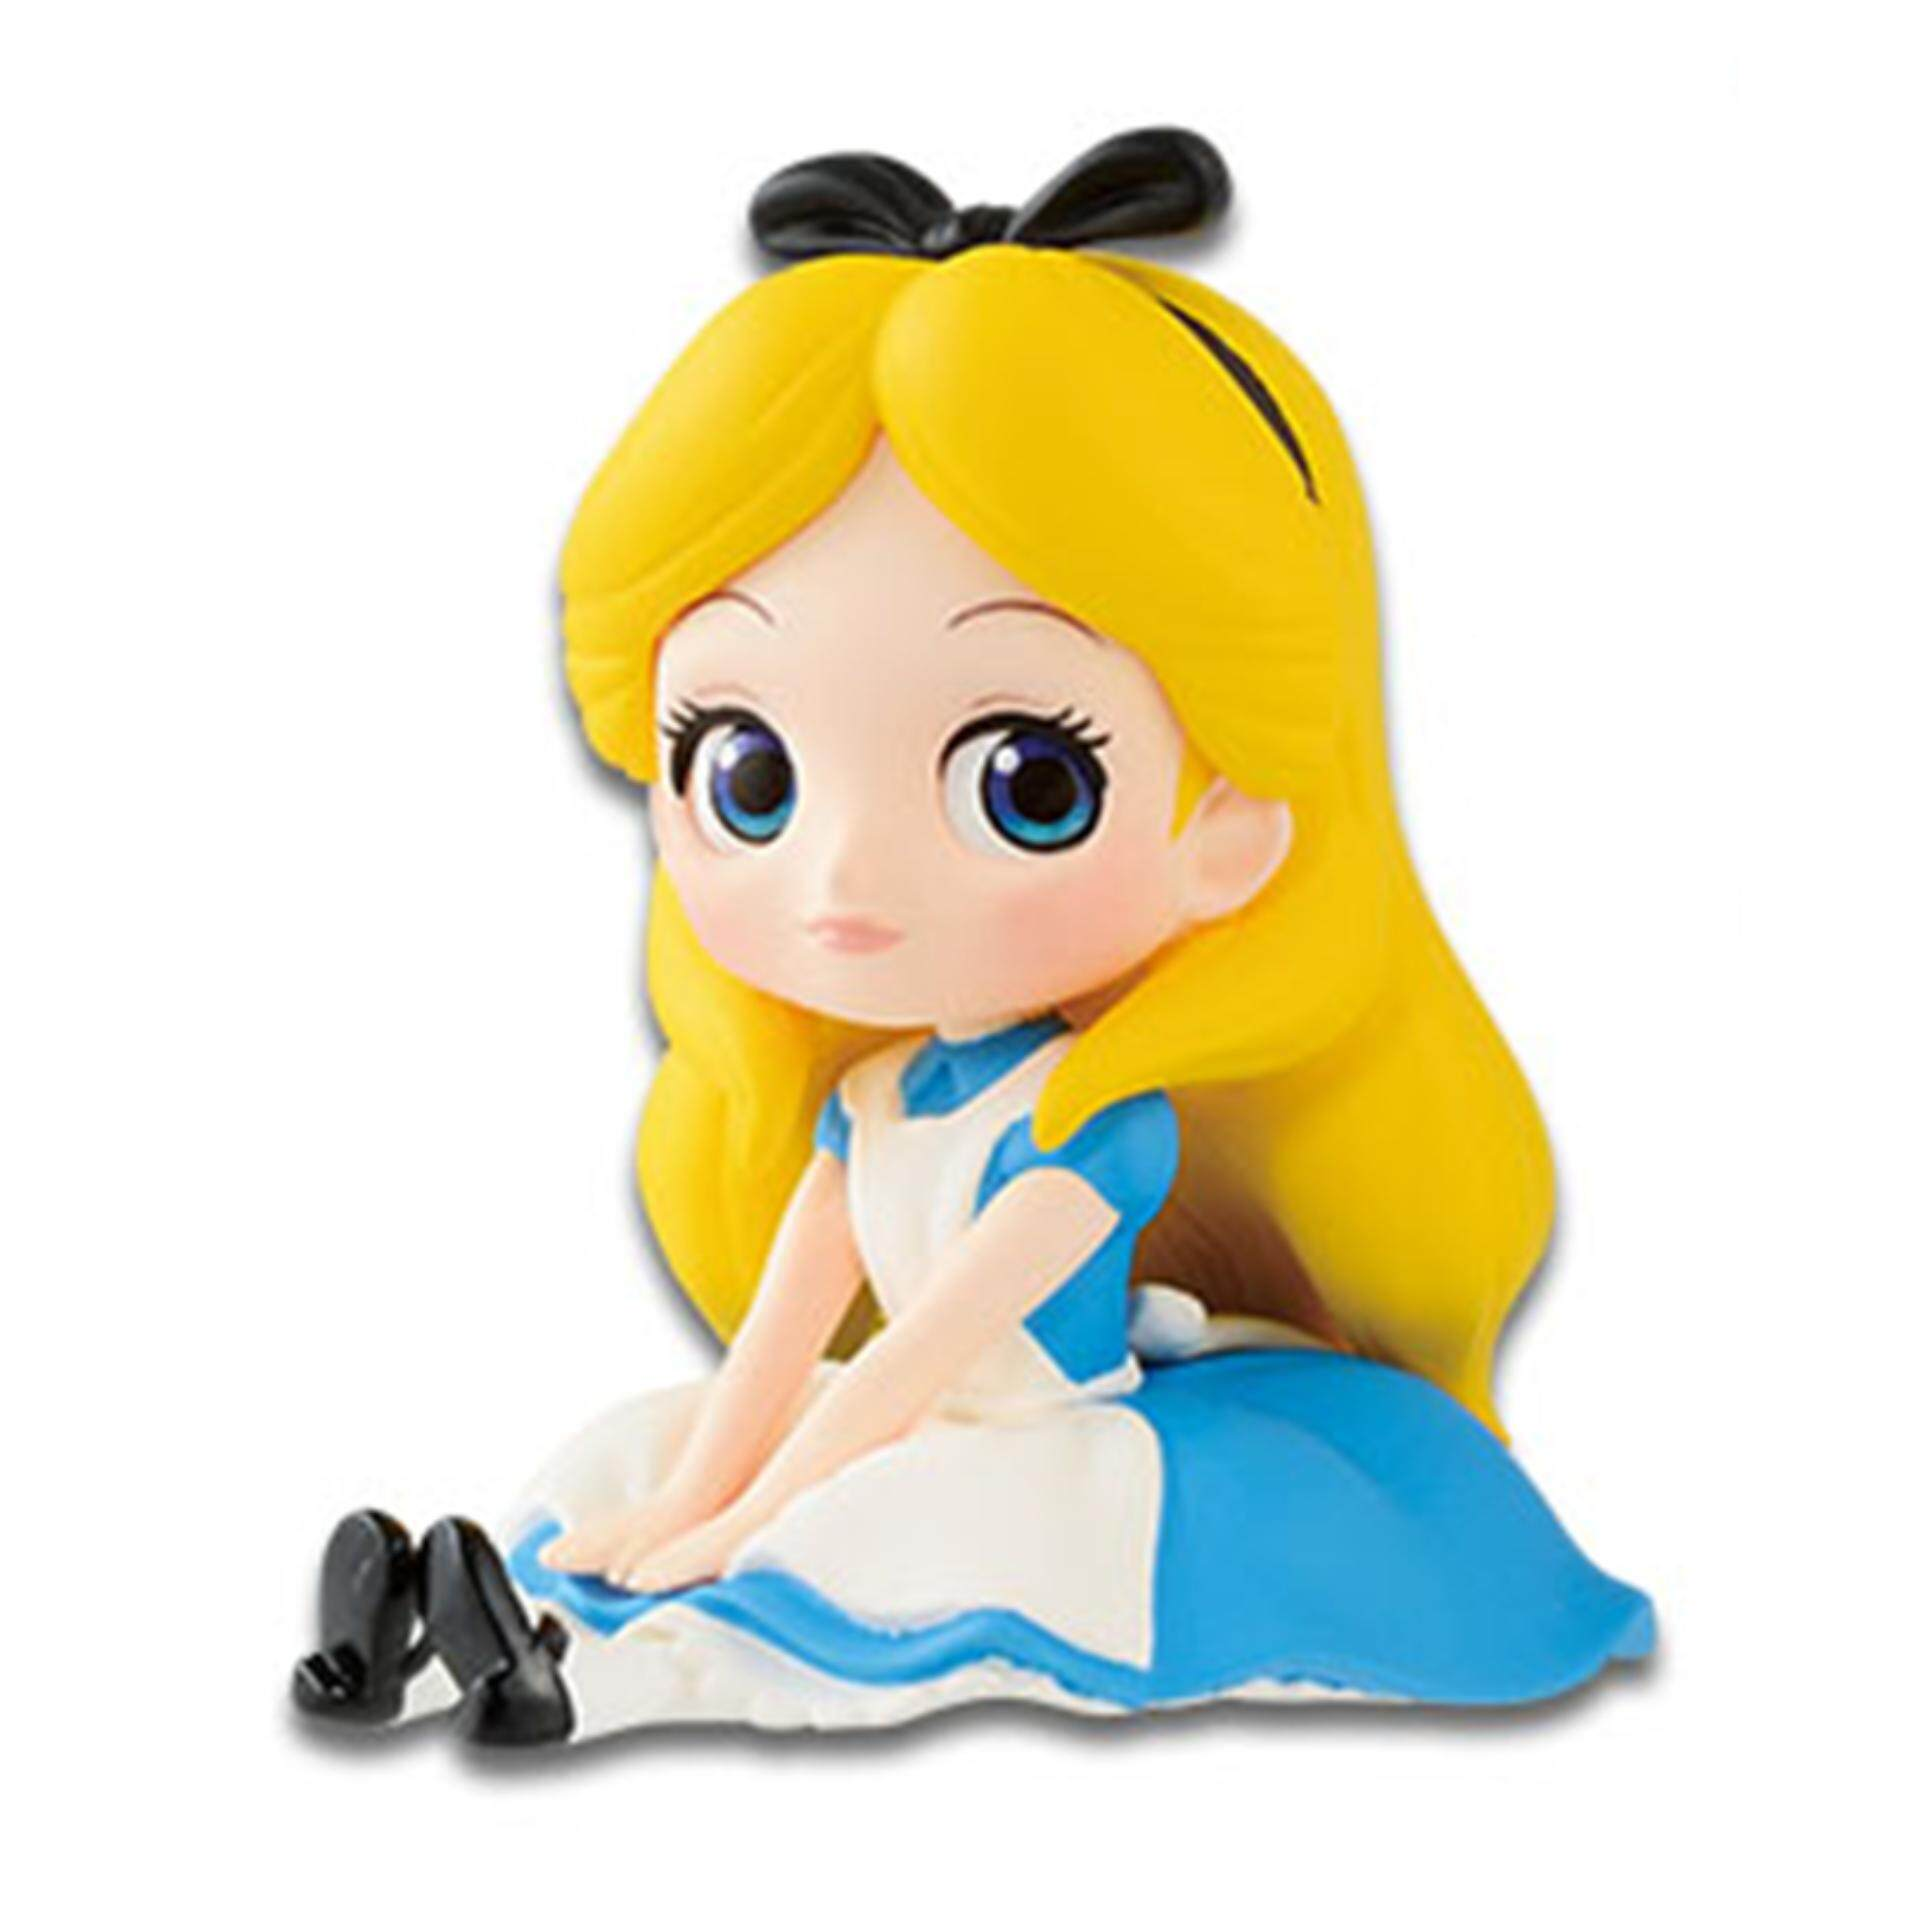 Banpresto Q Posket Disney Princess Petit Figure - Alice Toys for boys